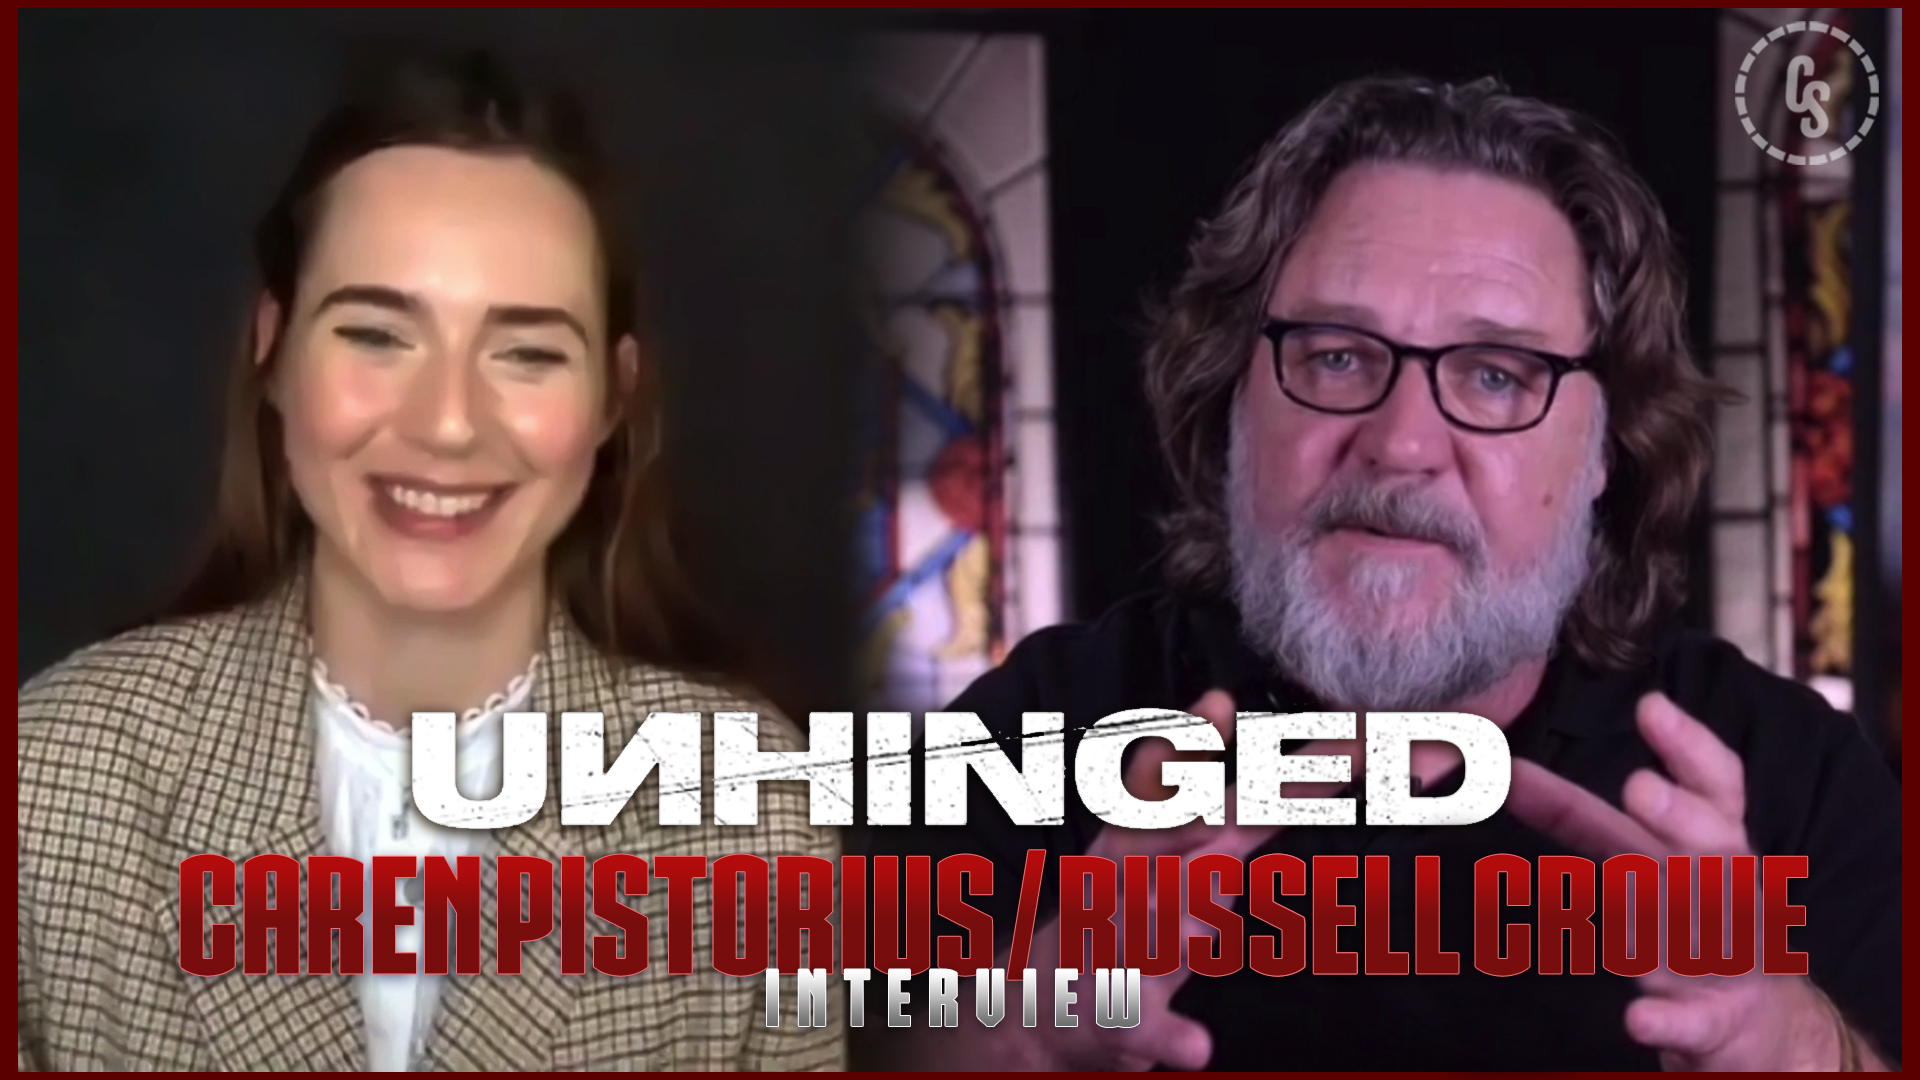 CS Video: Unhinged Interviews With Caren Pistorius & Russell Crowe